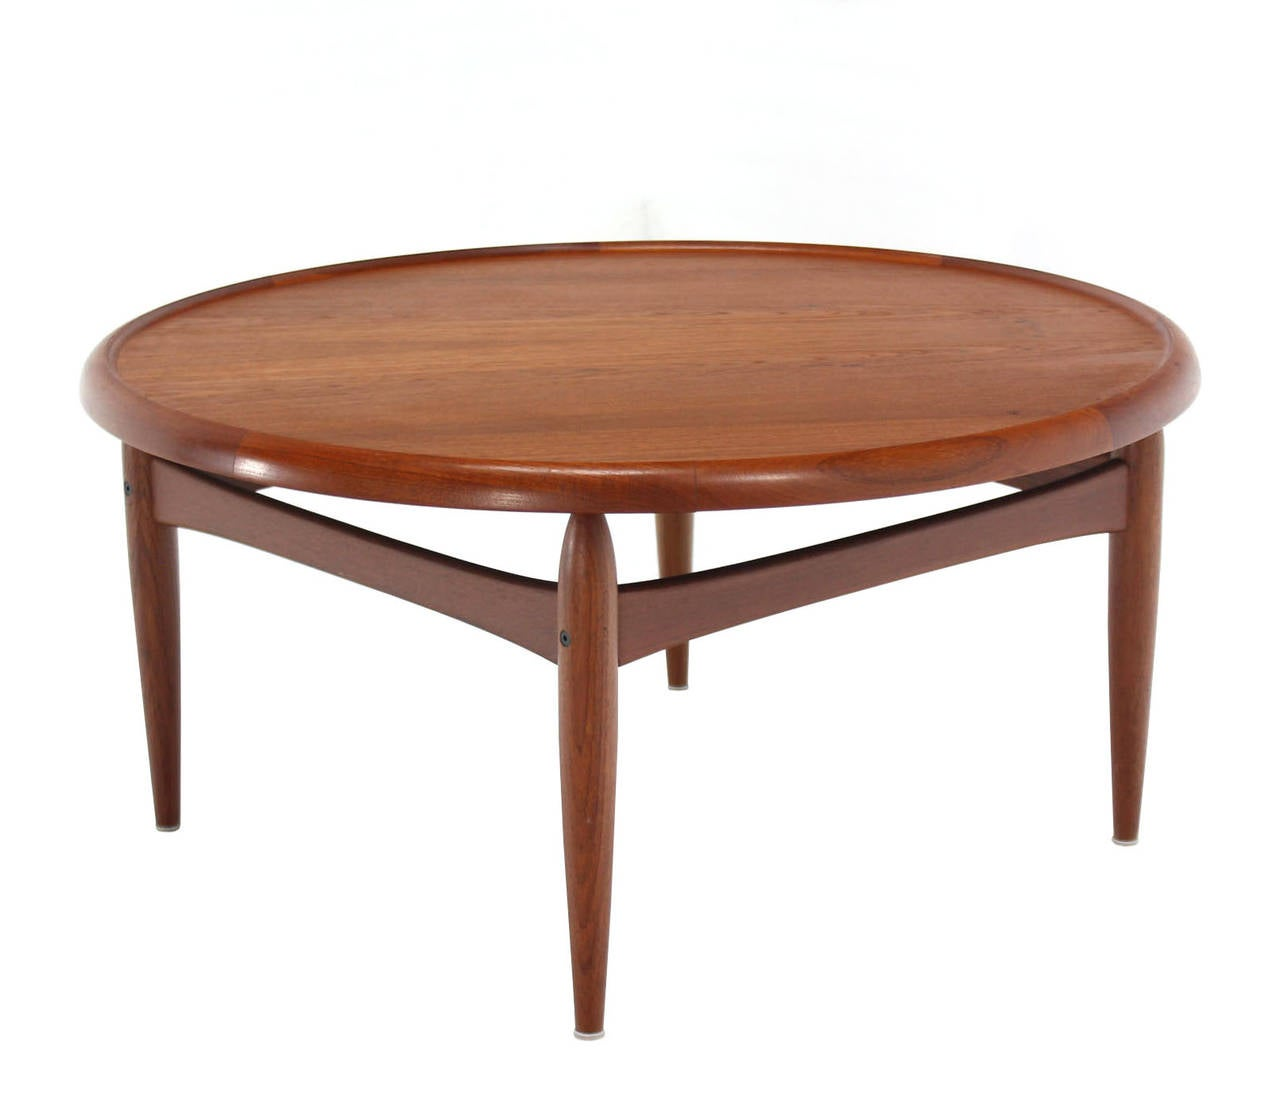 Reversible Flip Top Danish Modern Round Teak Coffee Table For Sale At 1stdibs